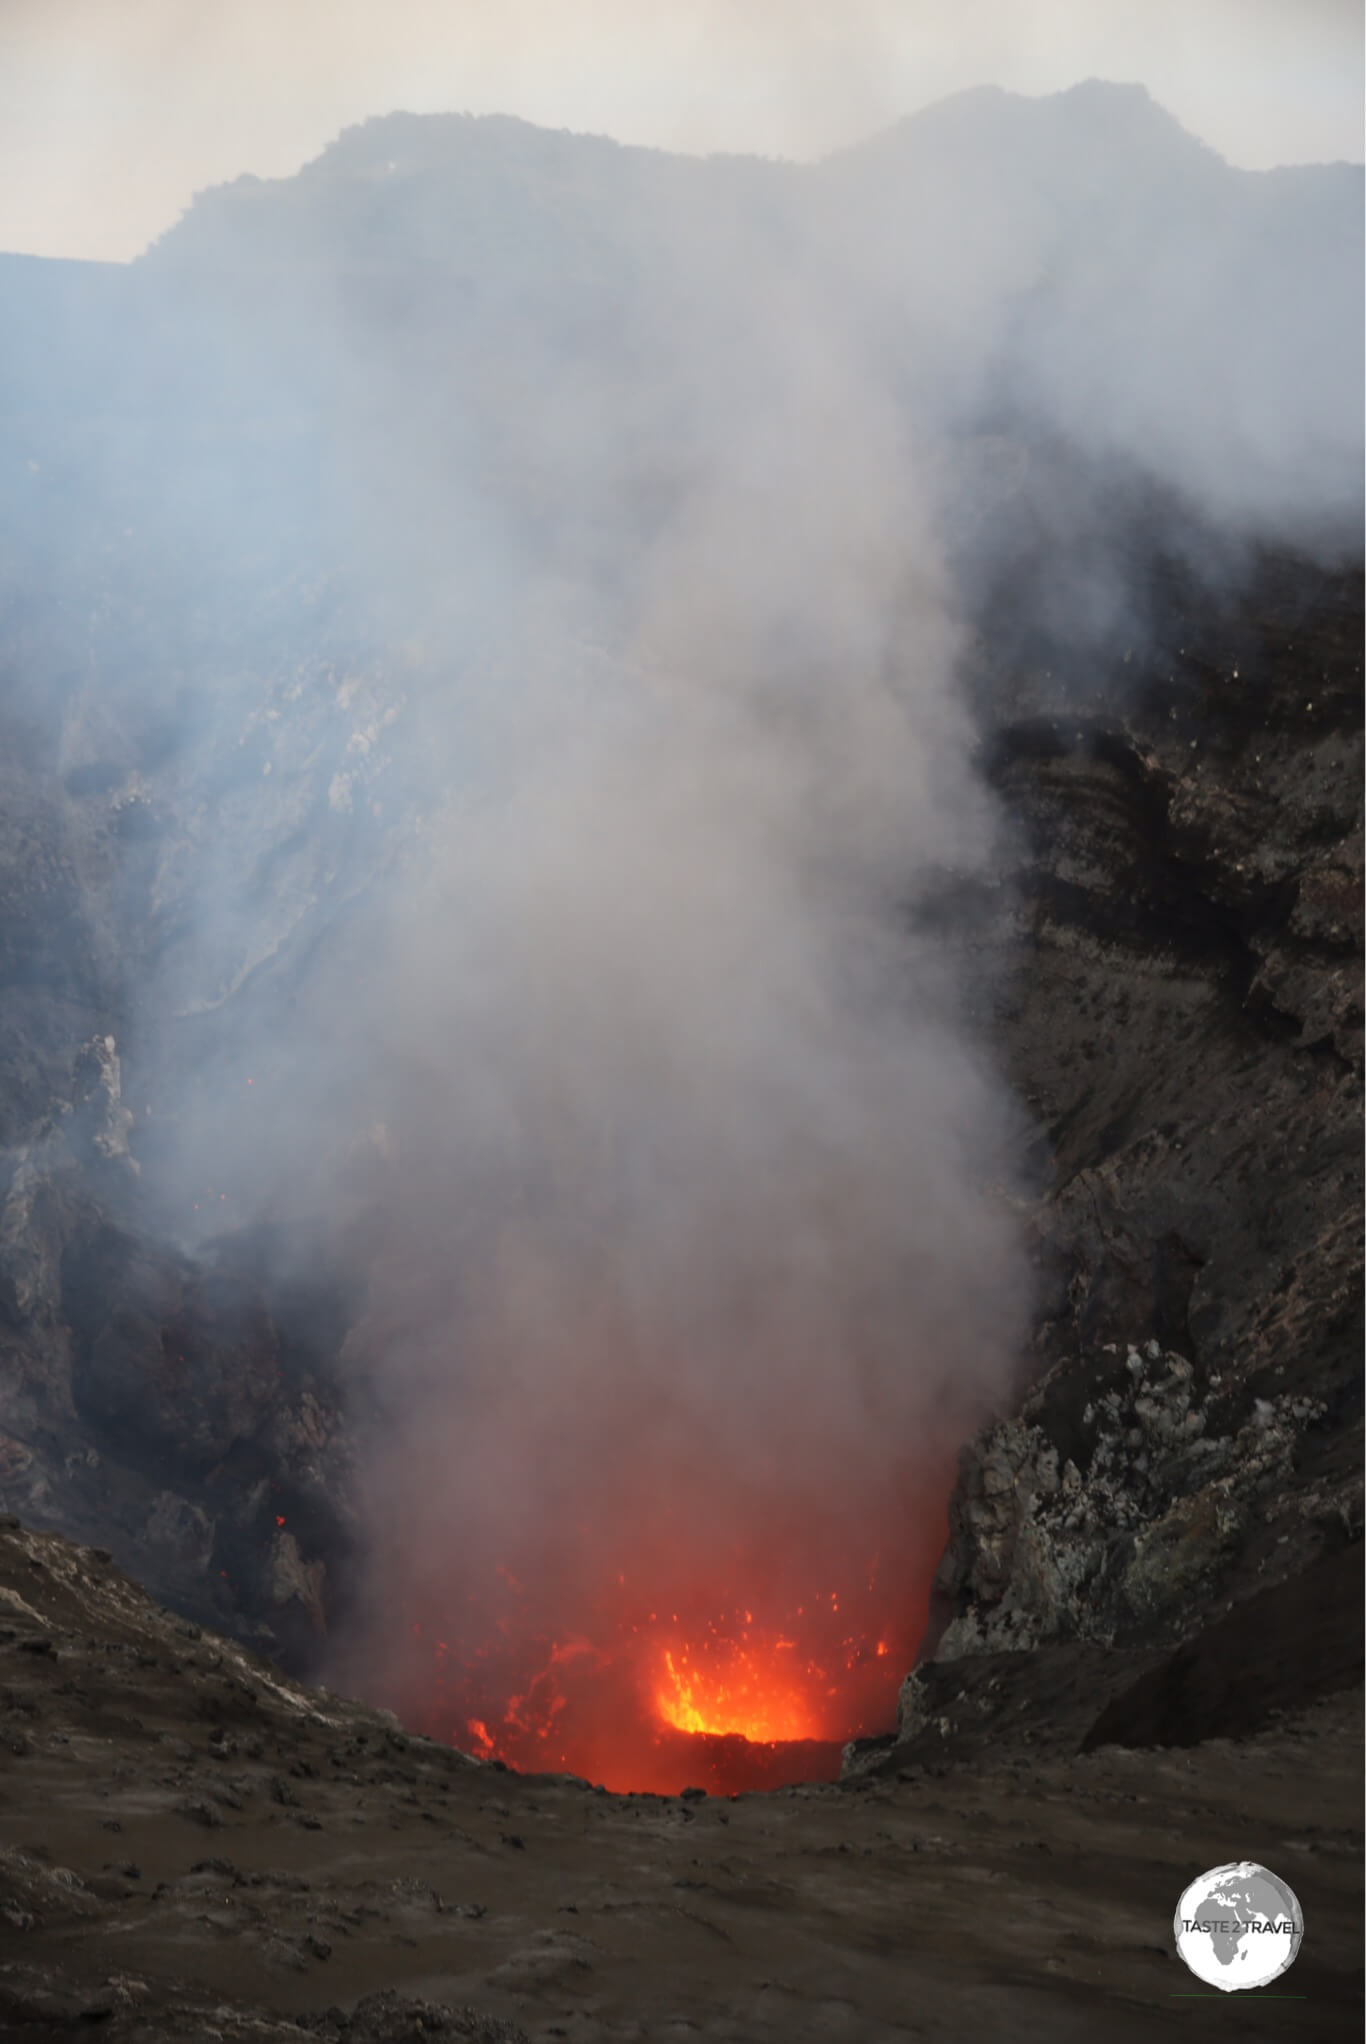 A glimpse into the heart of the volcano before the sun disappeared.